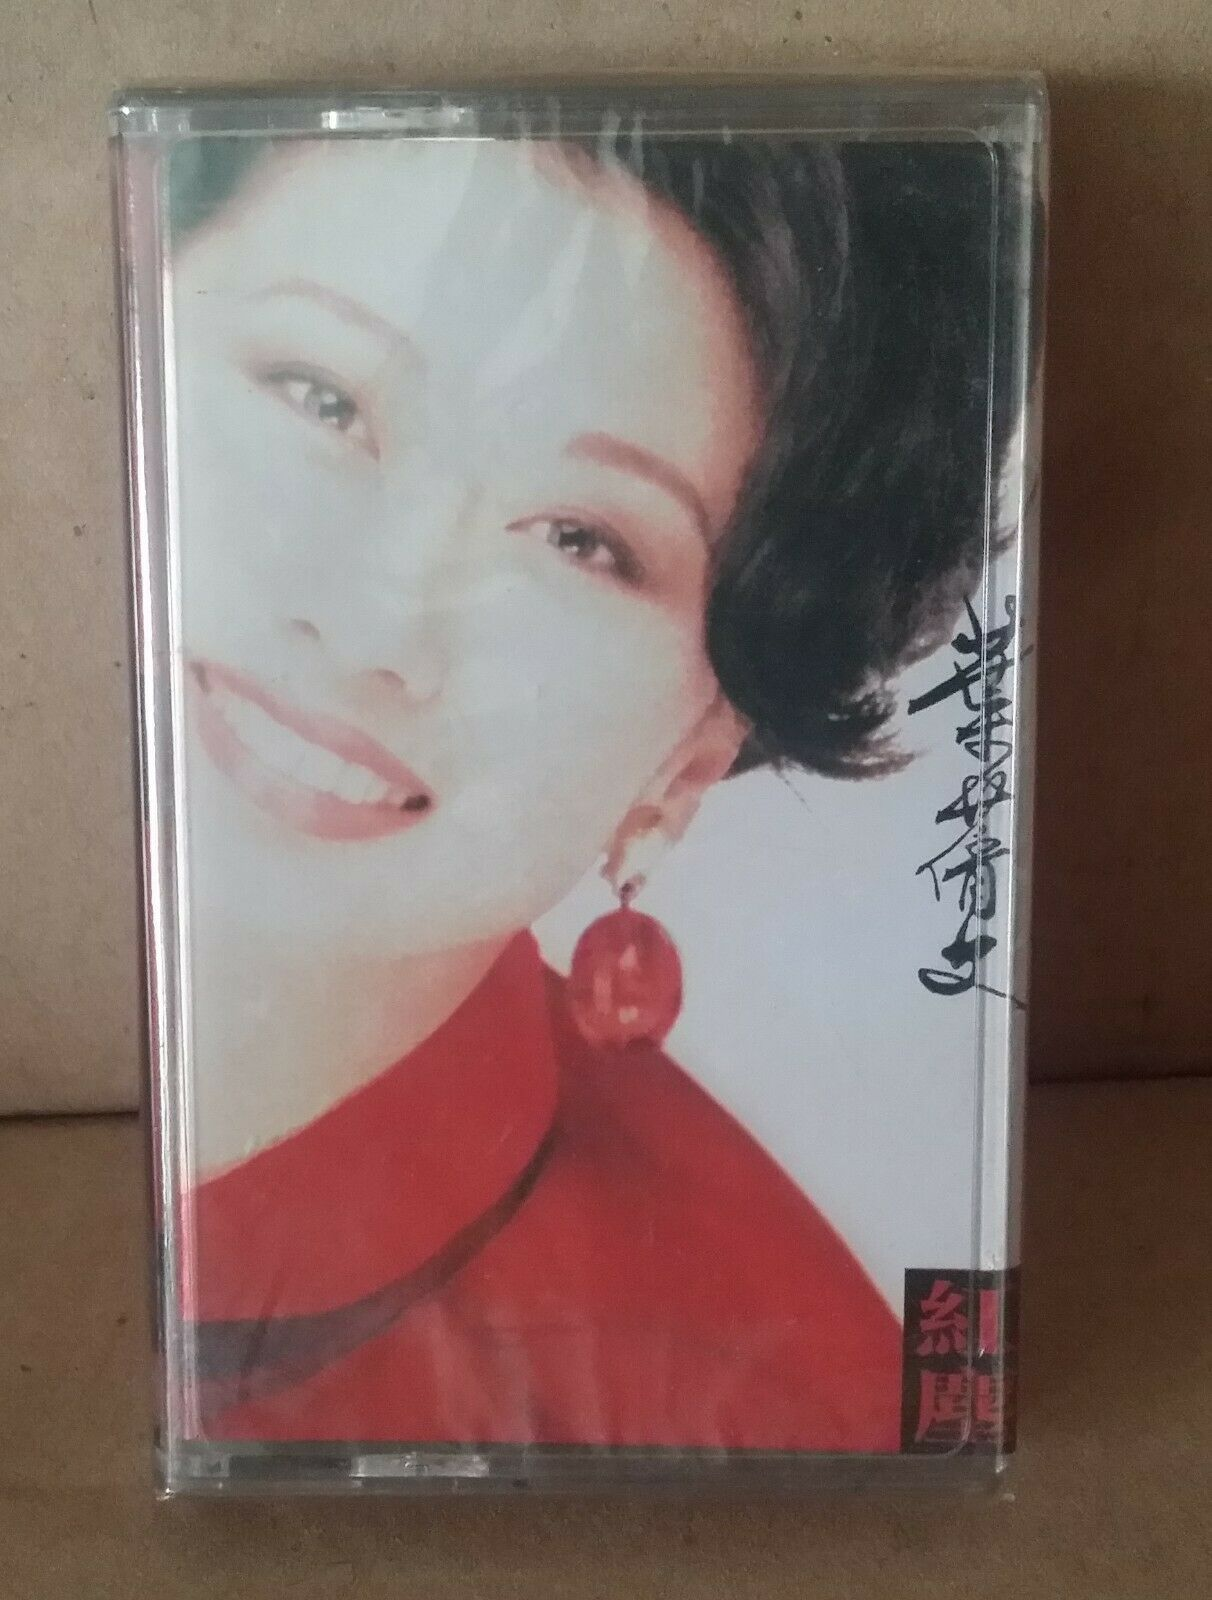 come back to love: 葉蒨文 - 紅塵 (1992)